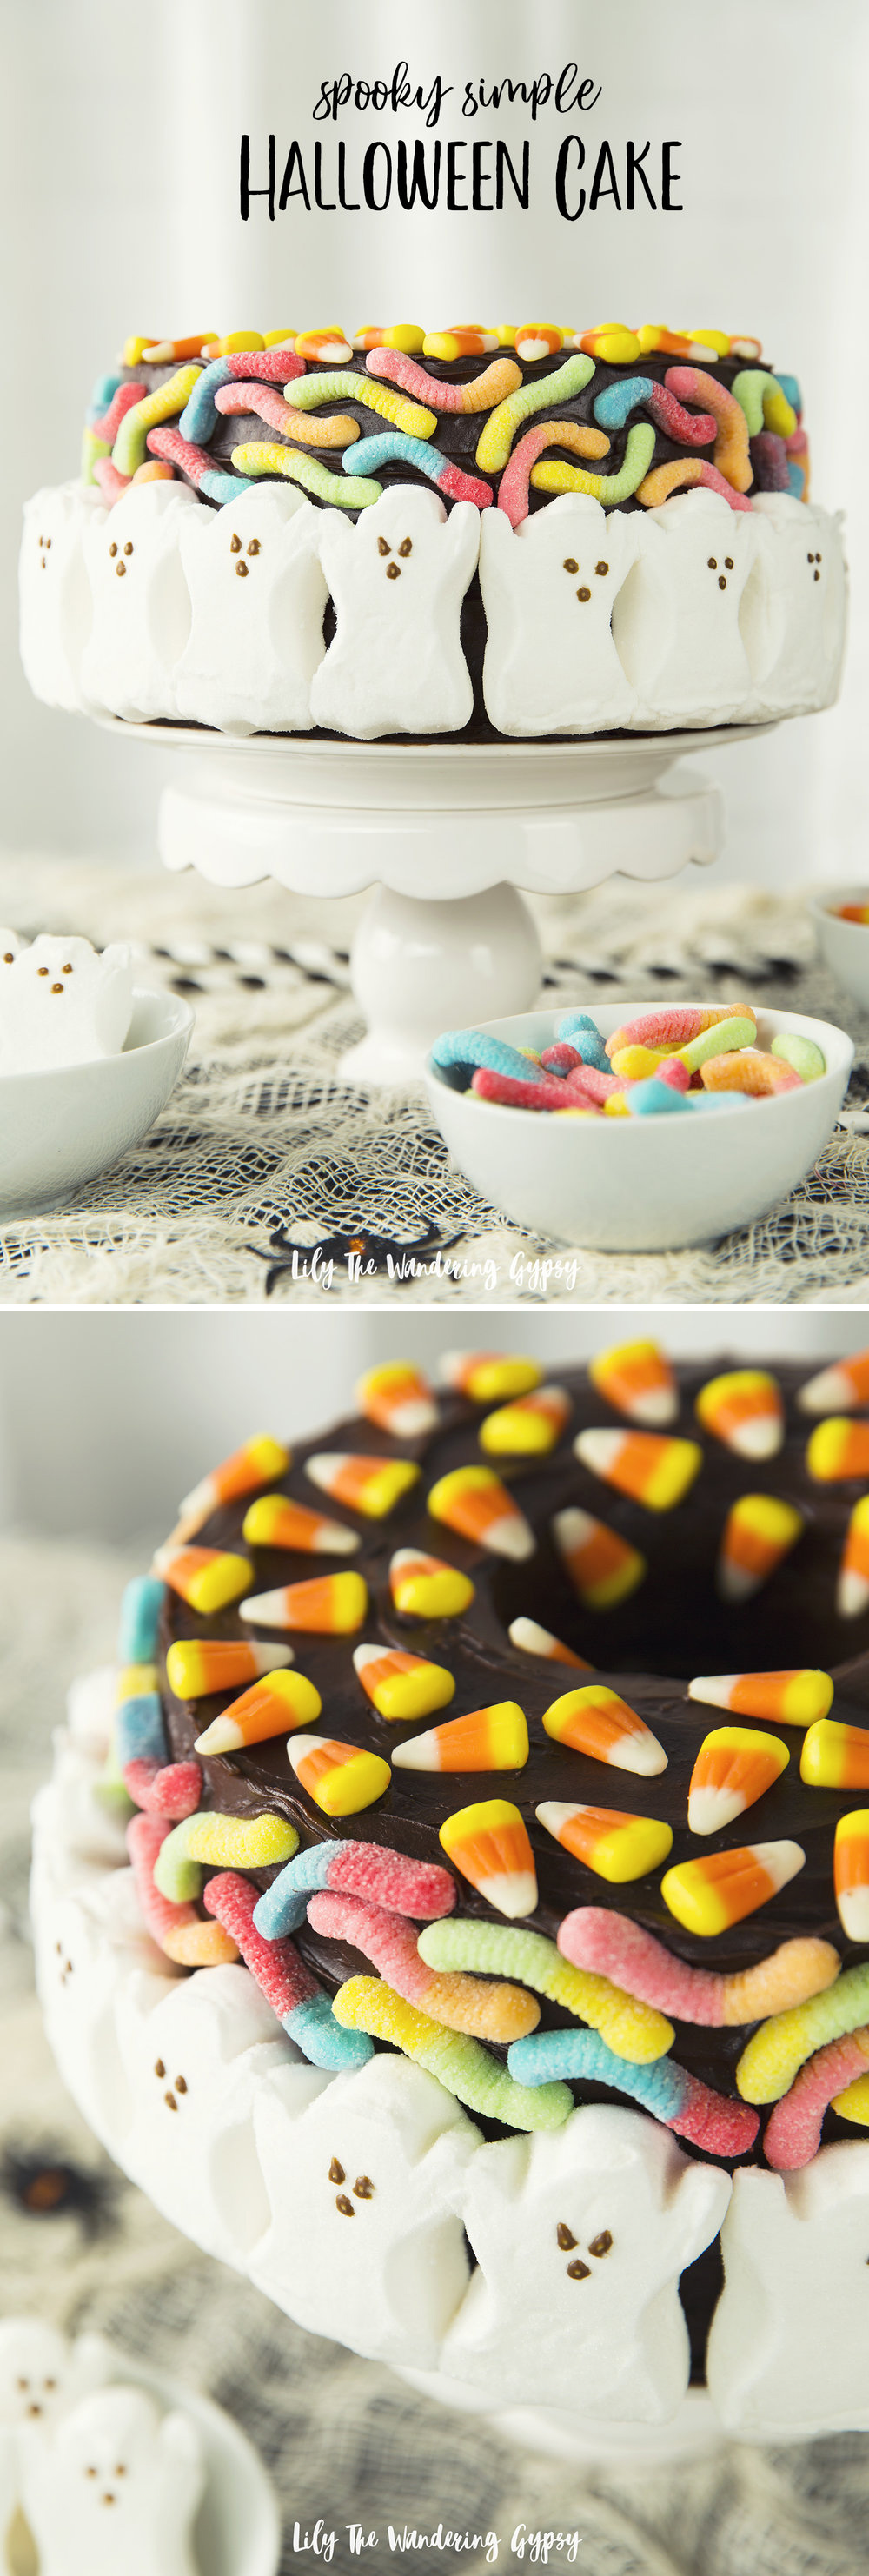 Check out this awesome Halloween Cake!